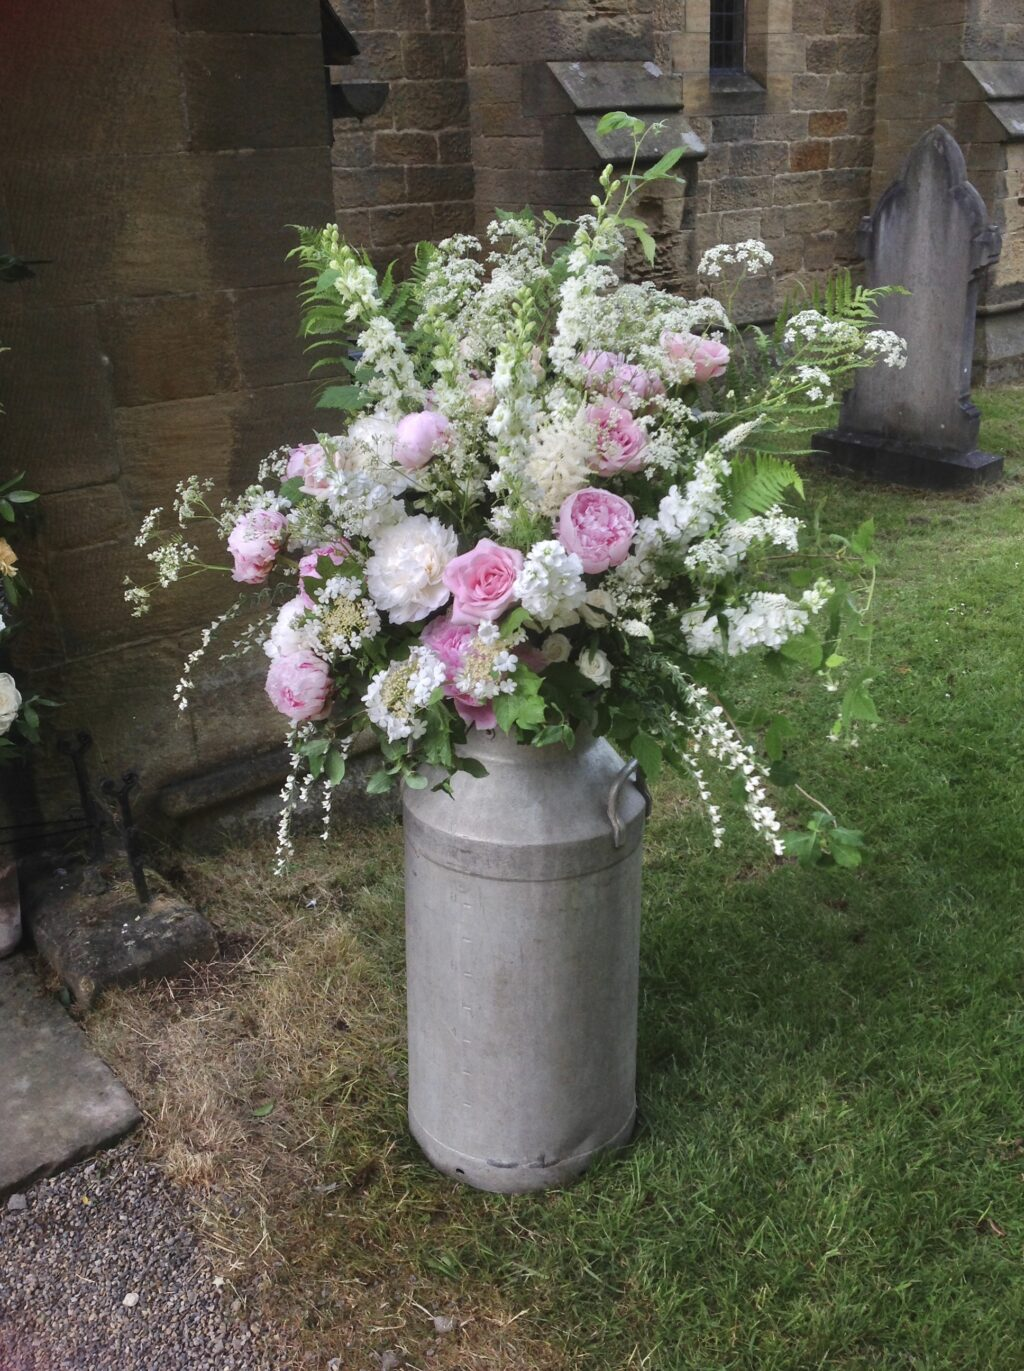 Wedding flowers - a milk churn outside the church is packed with scents from pink roses, white peonies and stocks, and overflows with frothy white cow parsley and ammi for a wildflower style church wedding